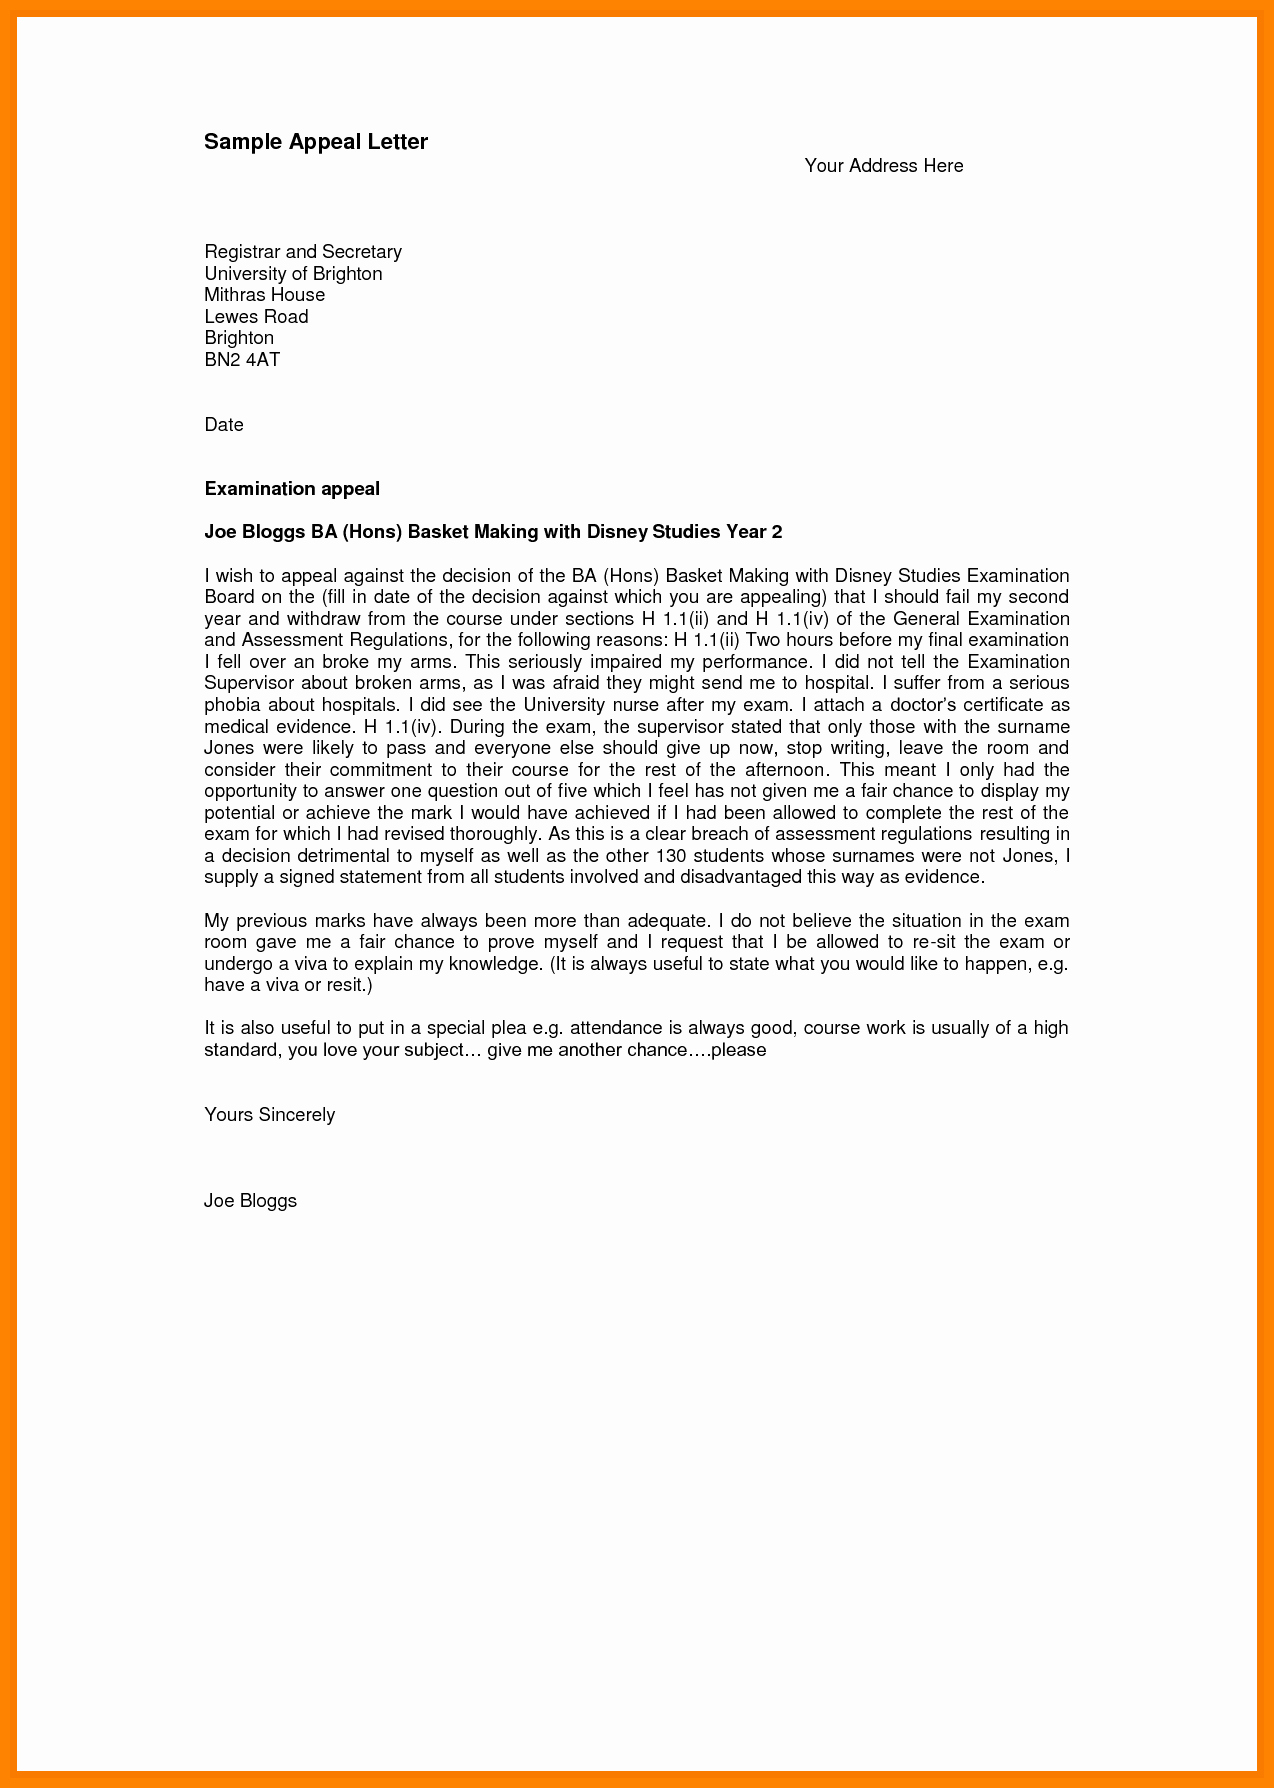 Sap Appeal Letter Examples Unique 7 Sap Appeal Letter Example